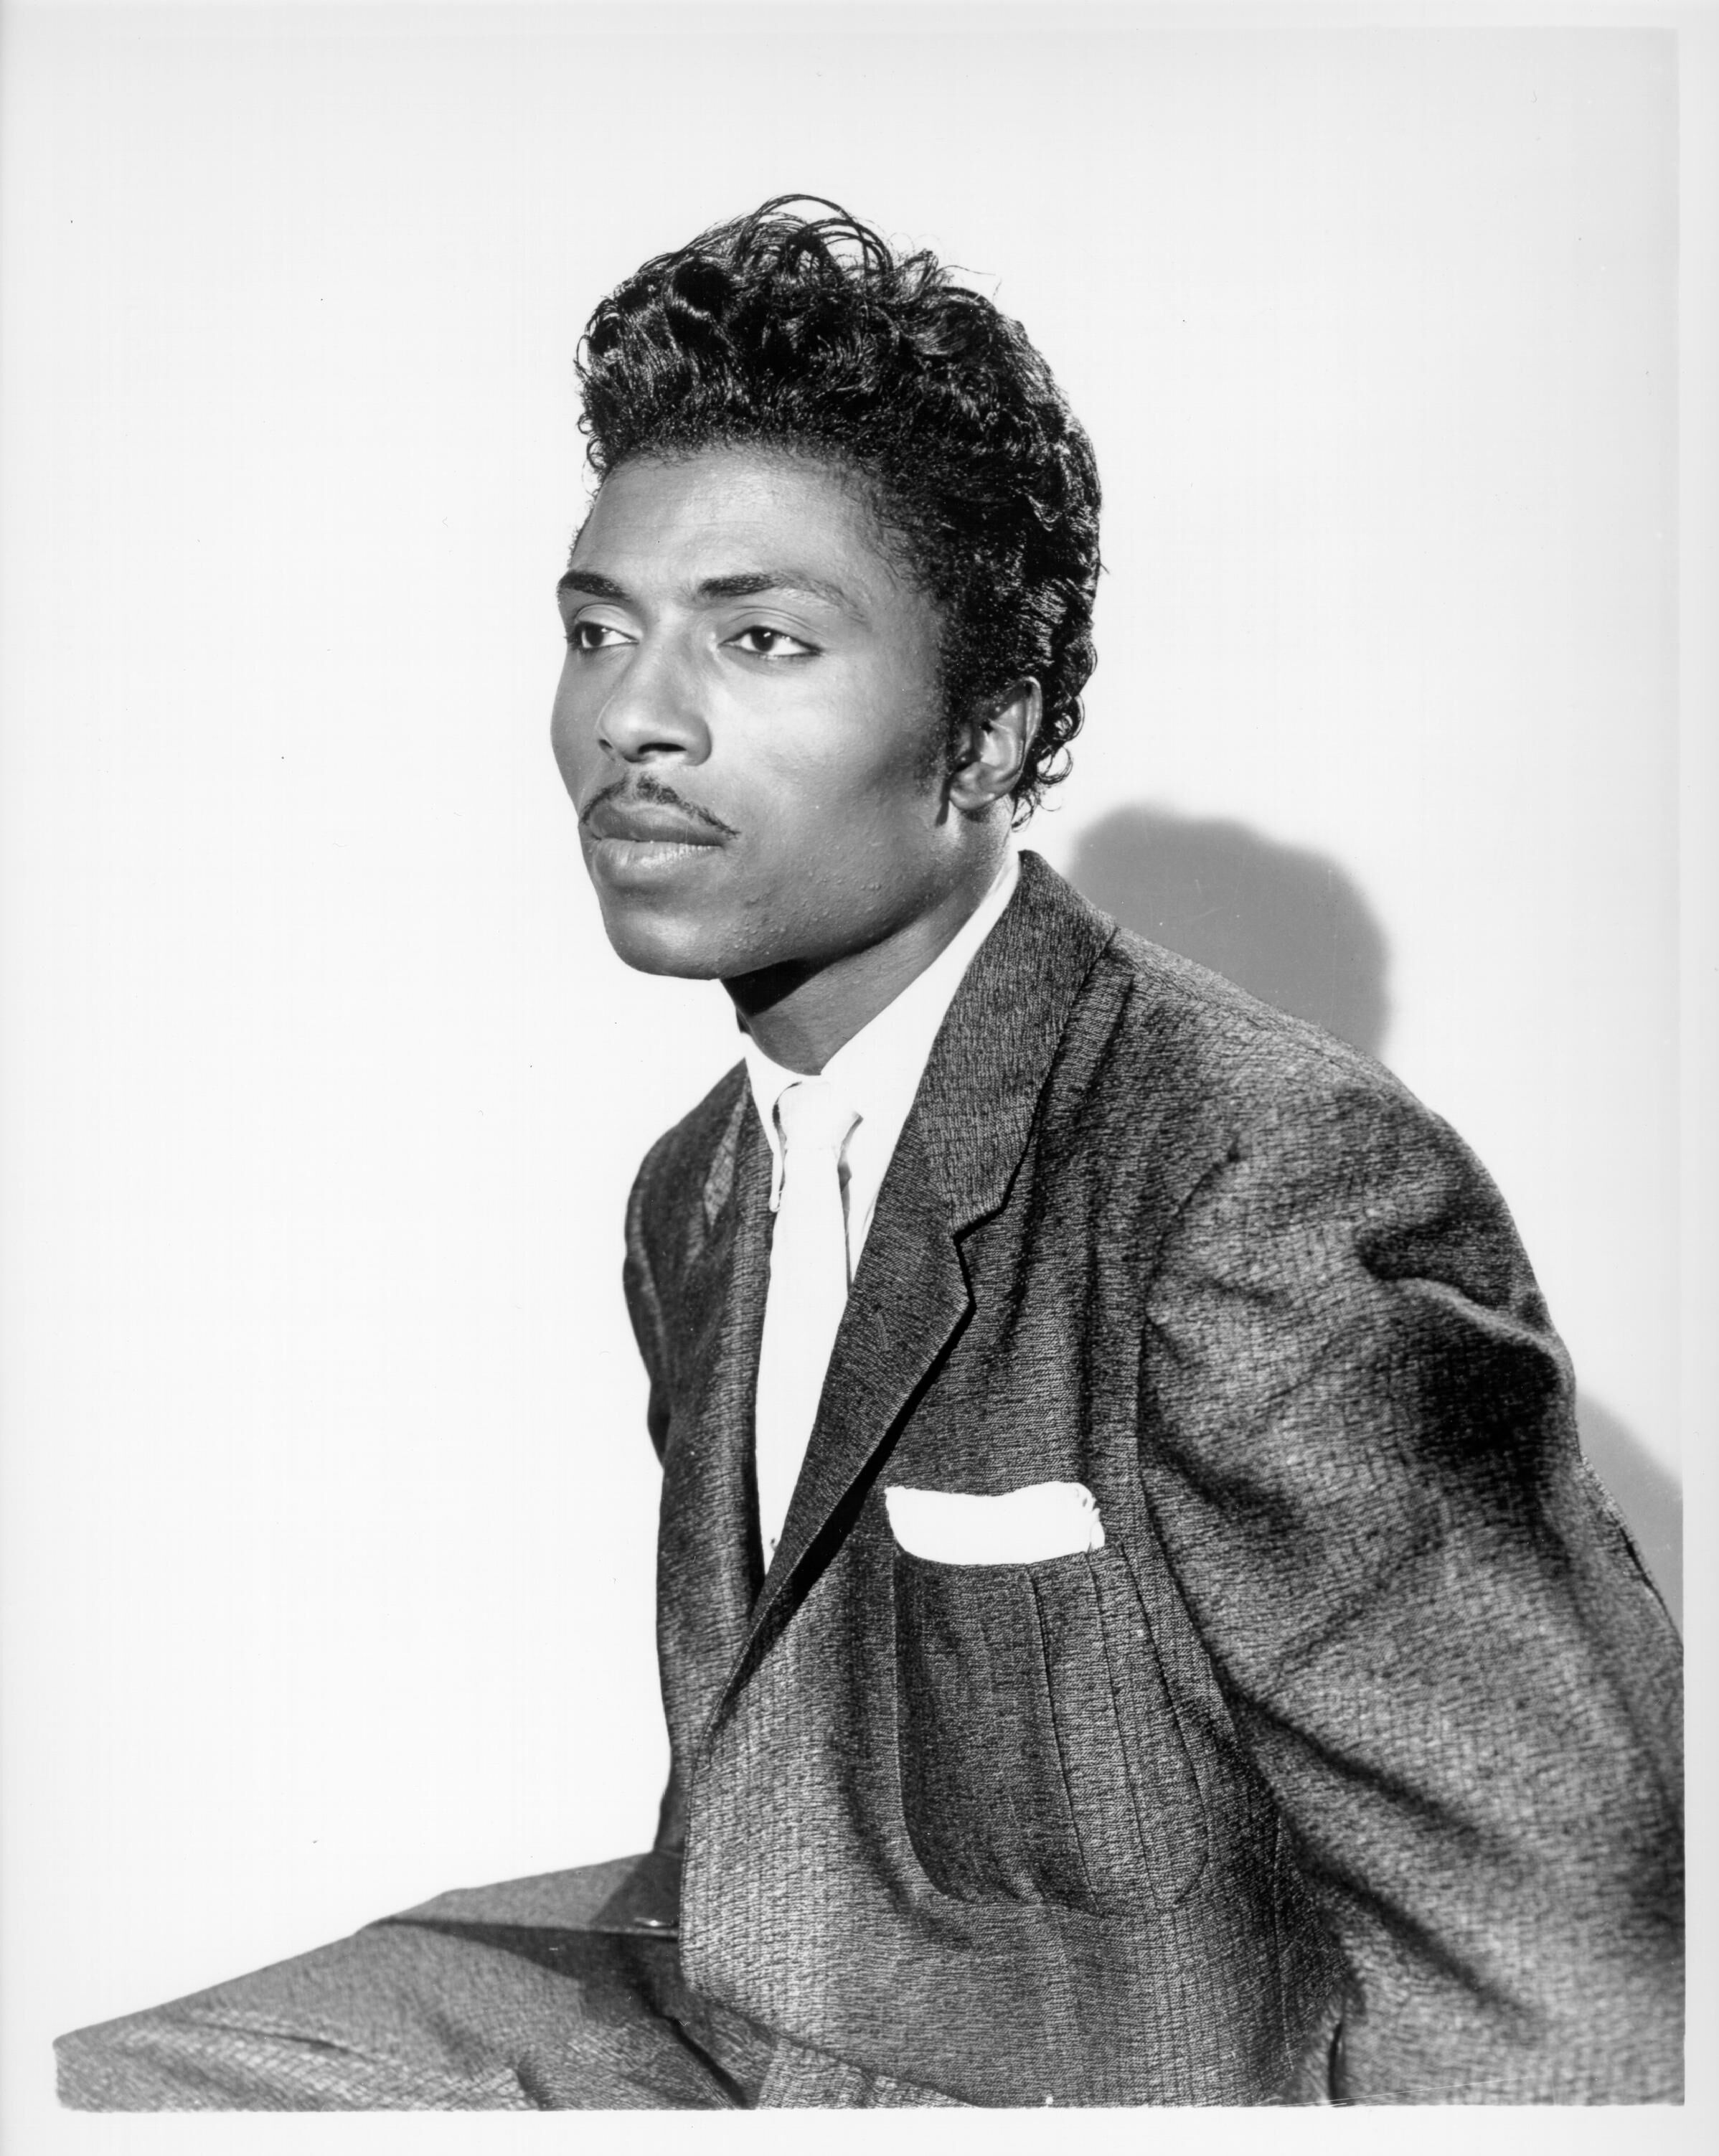 """Tutti Frutti"" and ""Long Tall Sally"" performer Little Richard posing for an official portrait in 1957 